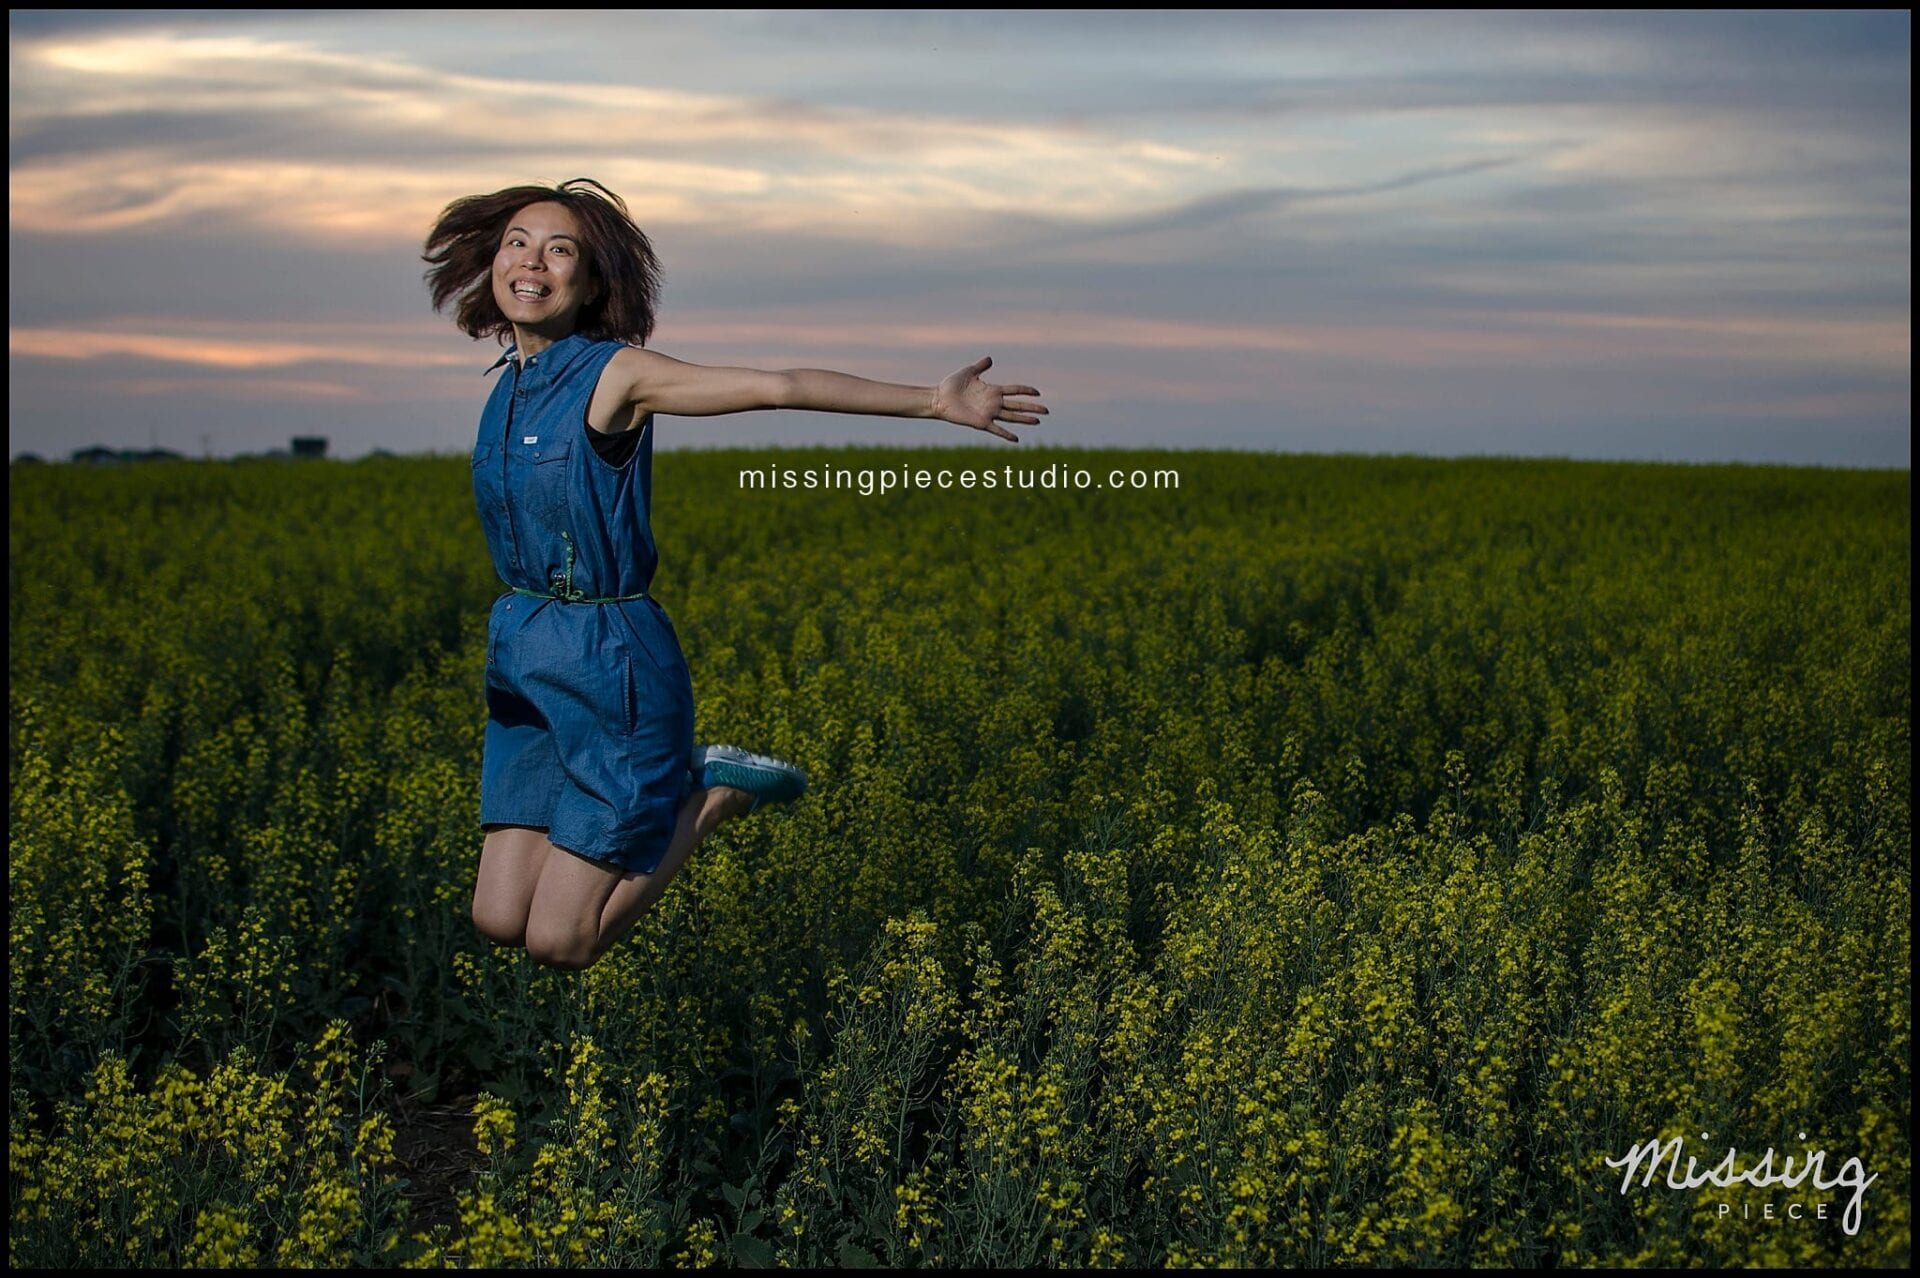 A girl jumping with joy in a beautiful canola field during sunset.